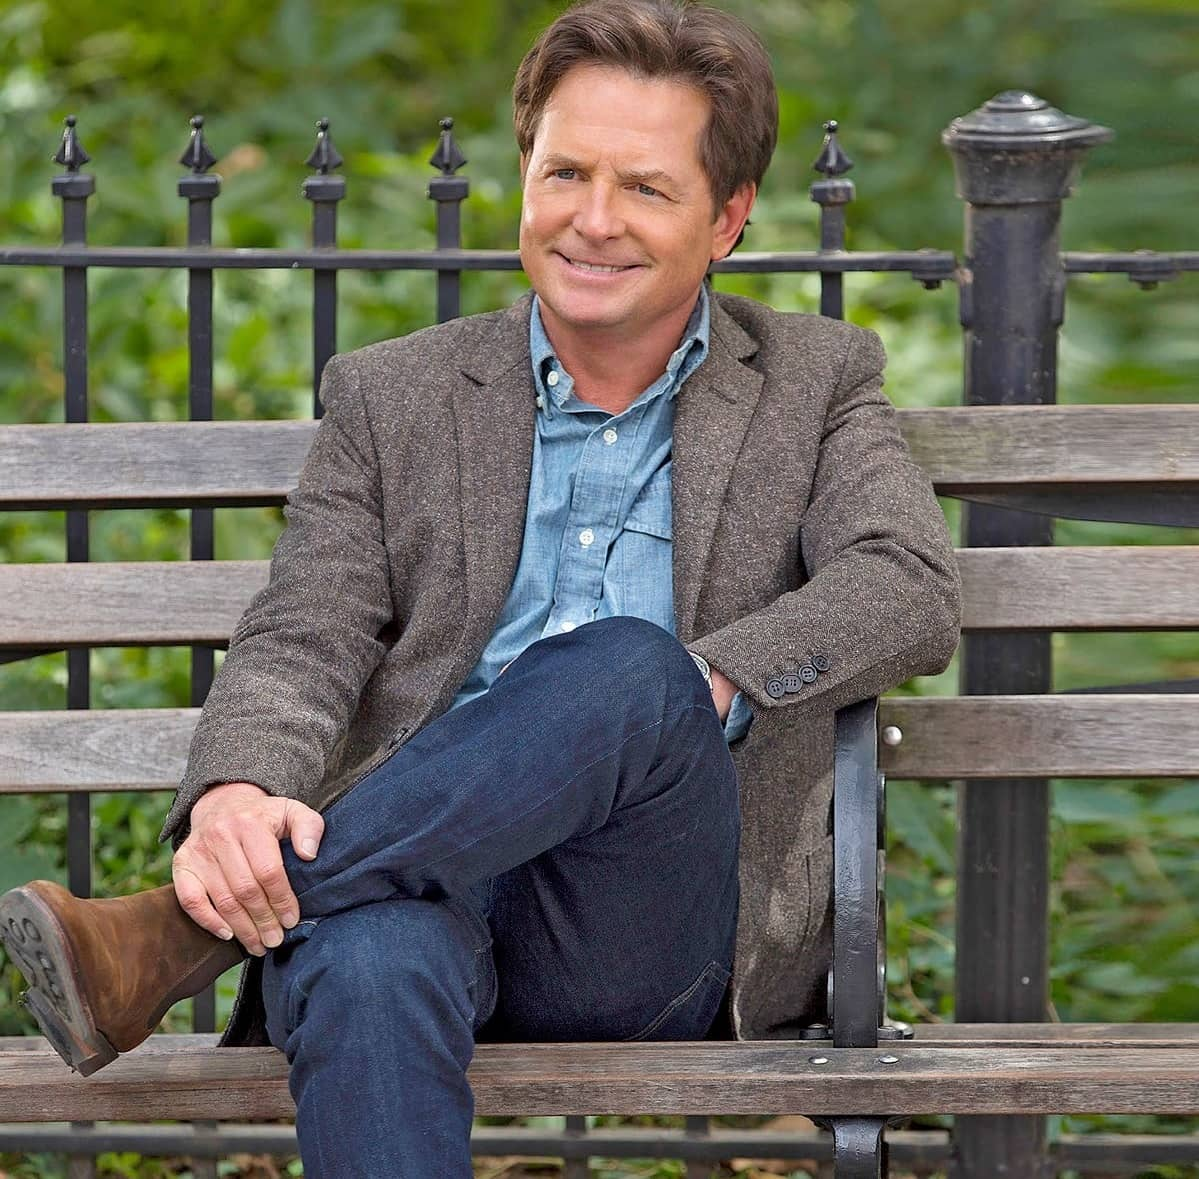 MICHAEL J FOX ' People don't believe me but ... I LOVE LIFE'